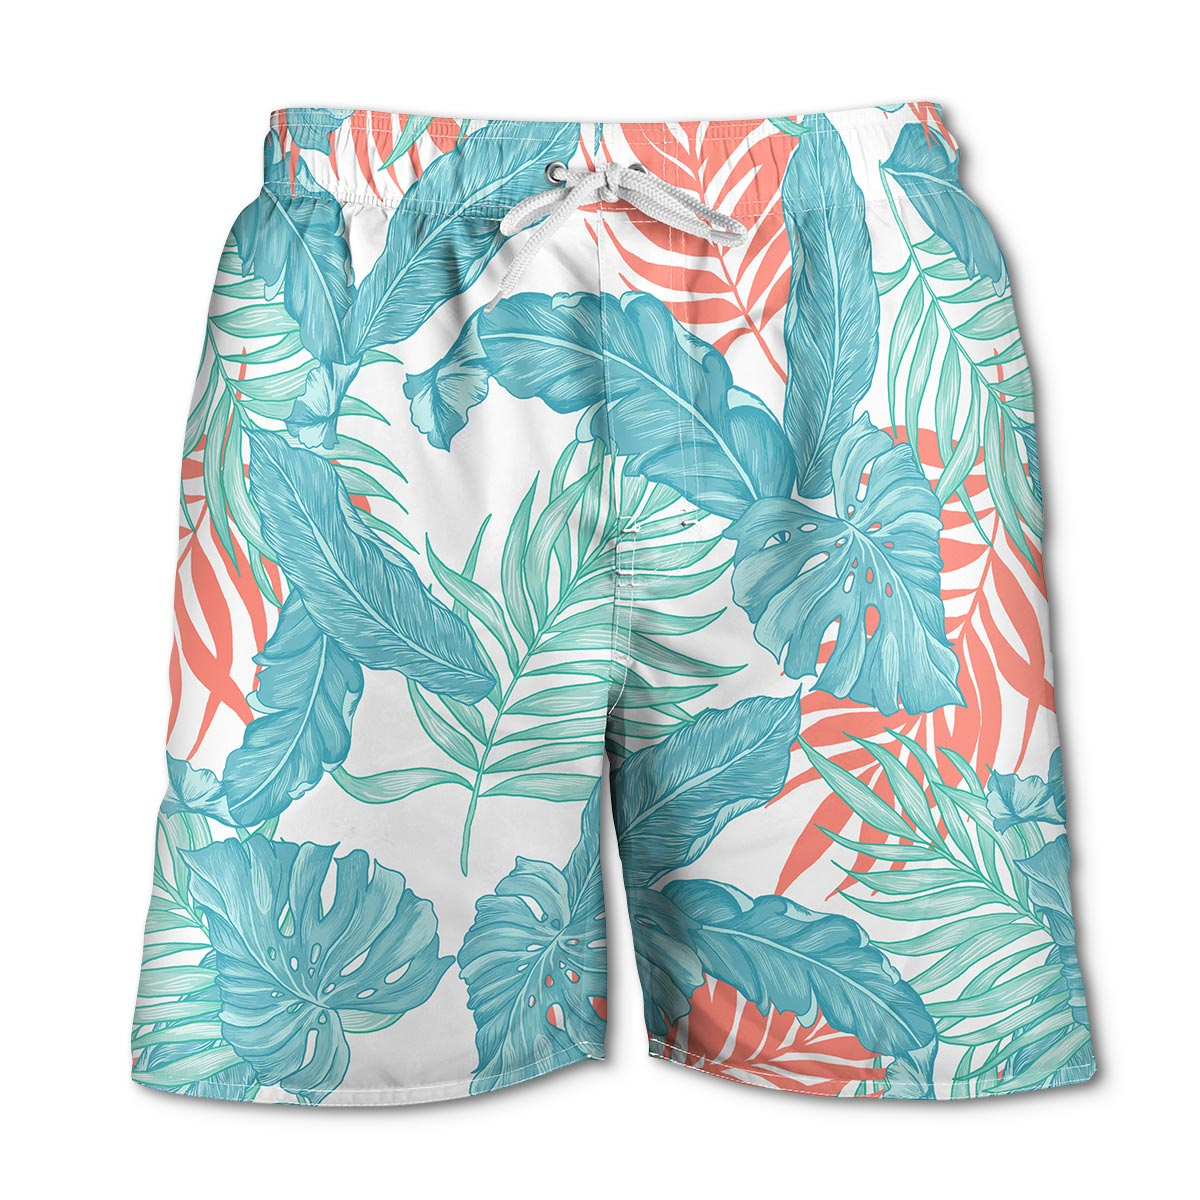 Newport Blue - Swim Shorts | Into to the Woods - Melon/White